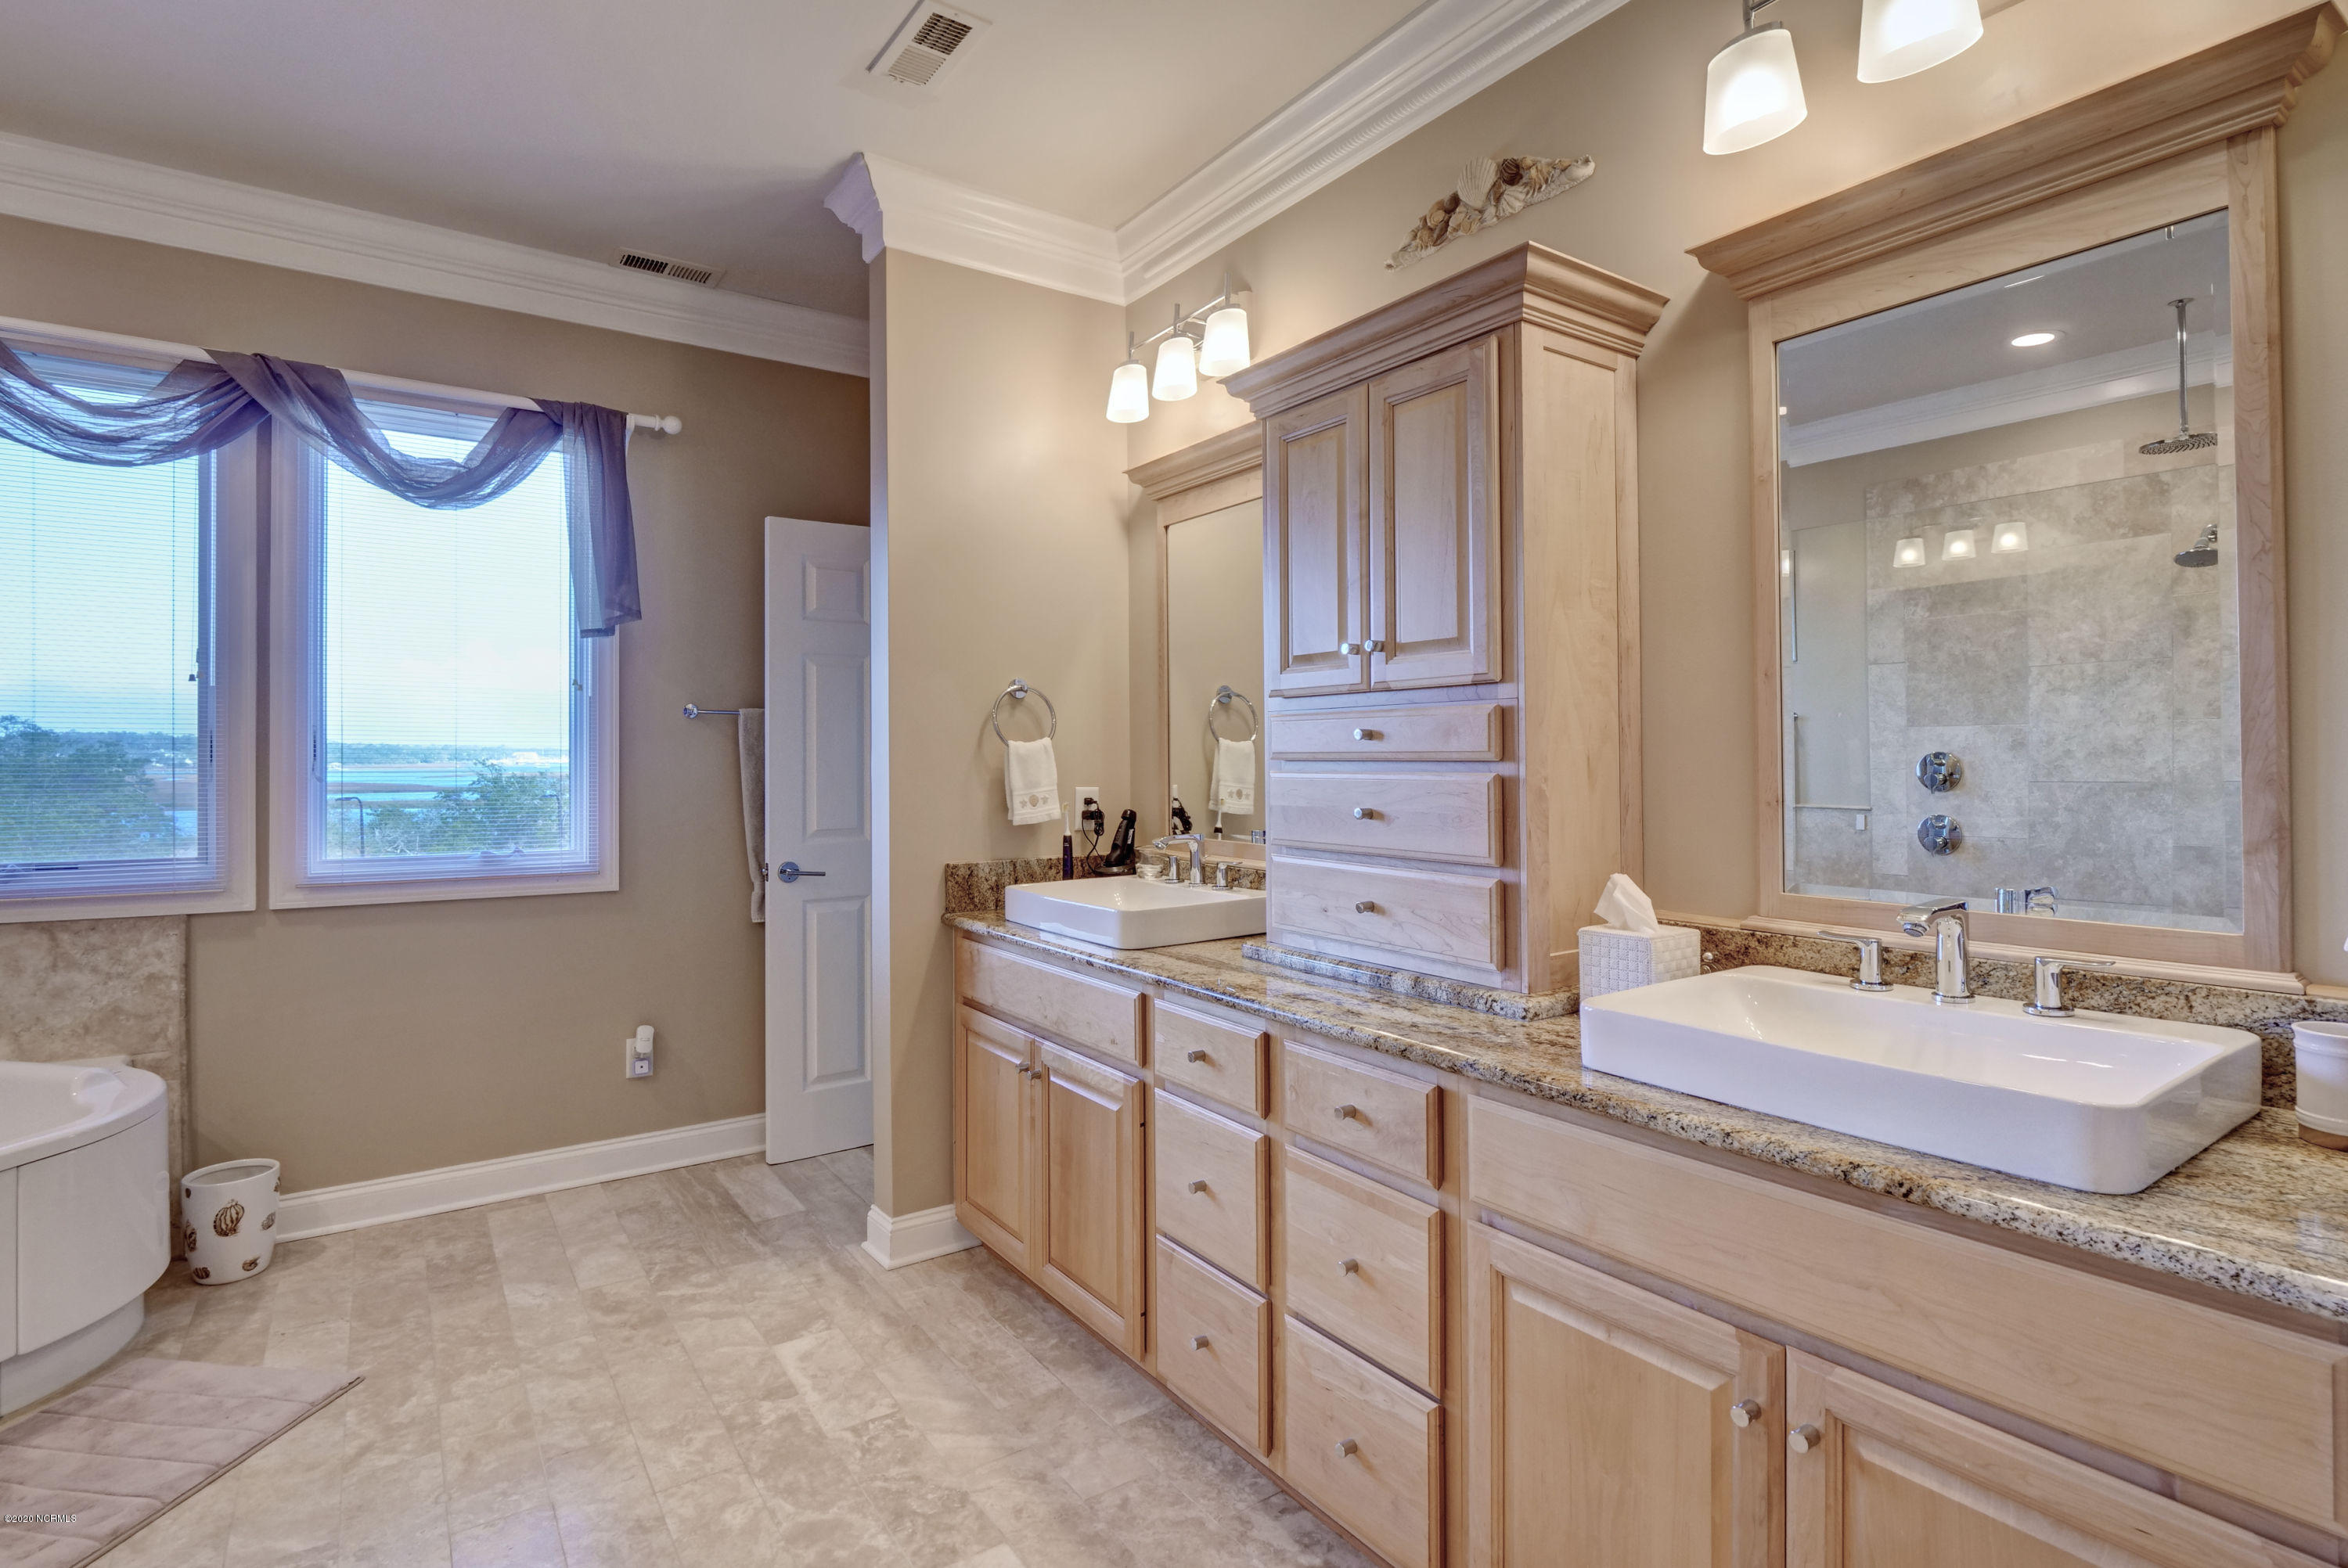 6819 Towles Road, Wilmington, North Carolina 28409, 5 Bedrooms Bedrooms, 13 Rooms Rooms,4 BathroomsBathrooms,Single family residence,For sale,Towles,100231575